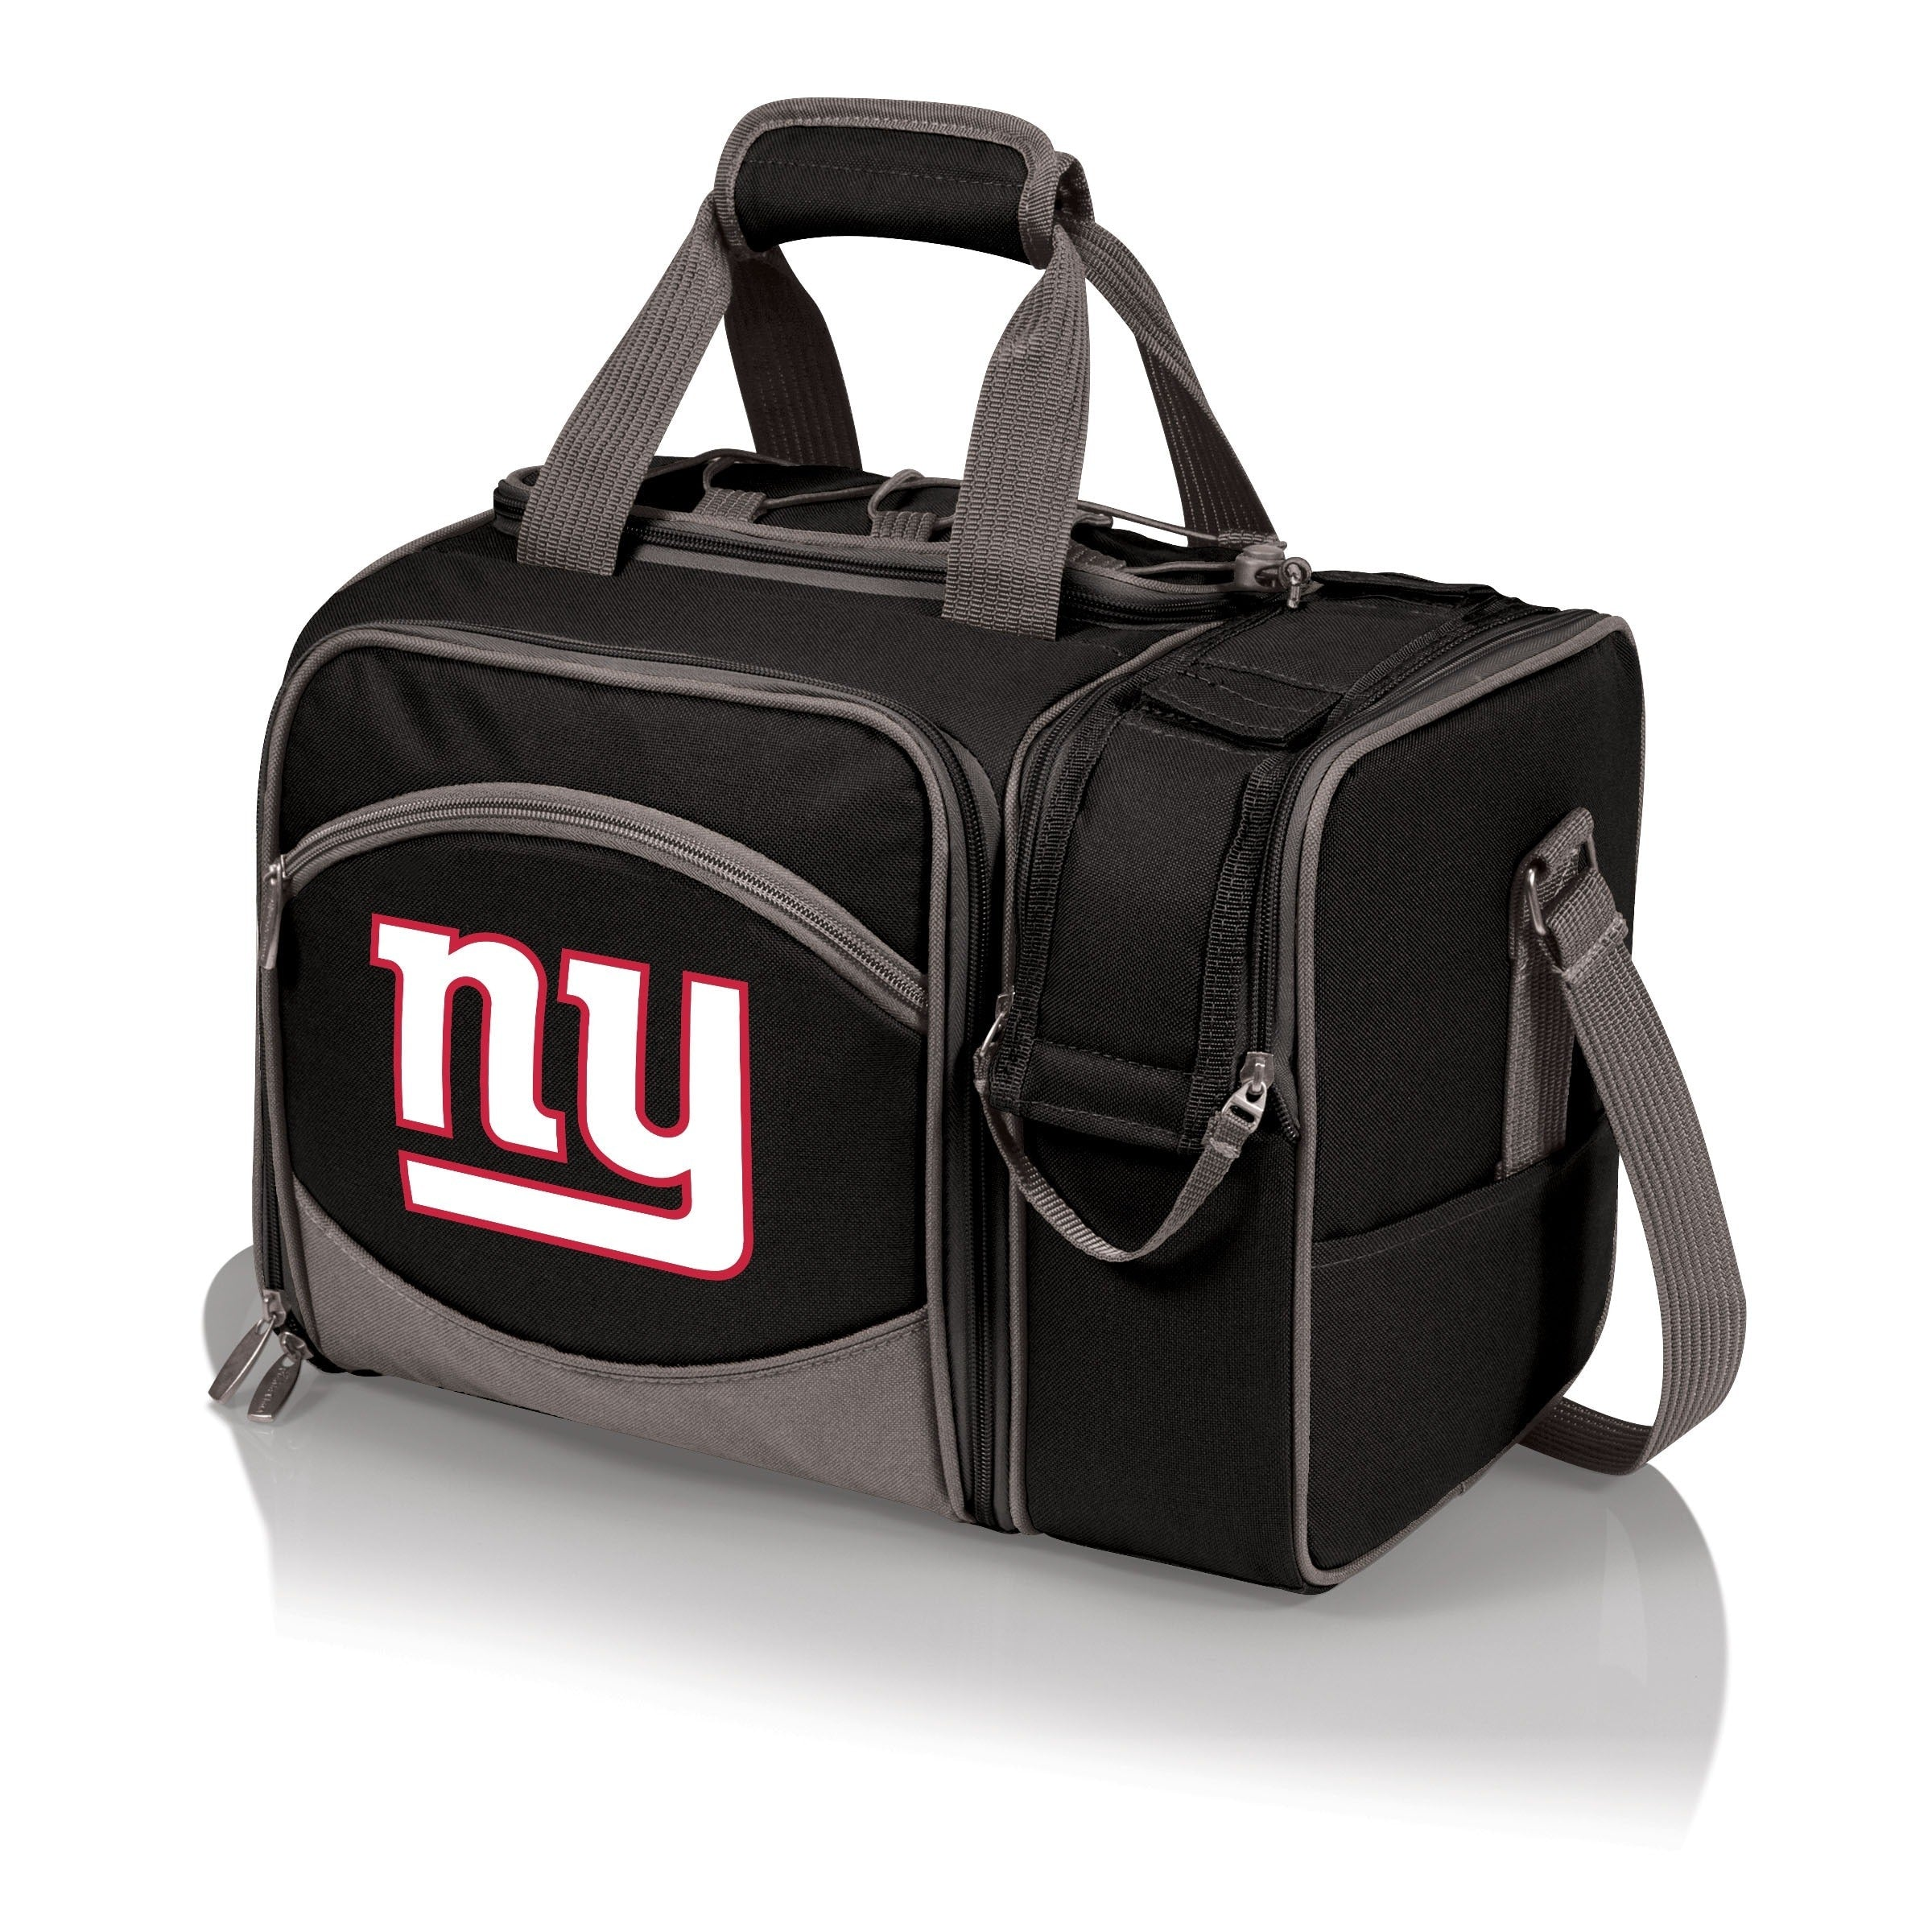 Malibu Black New York Giants - Diamond Home USA